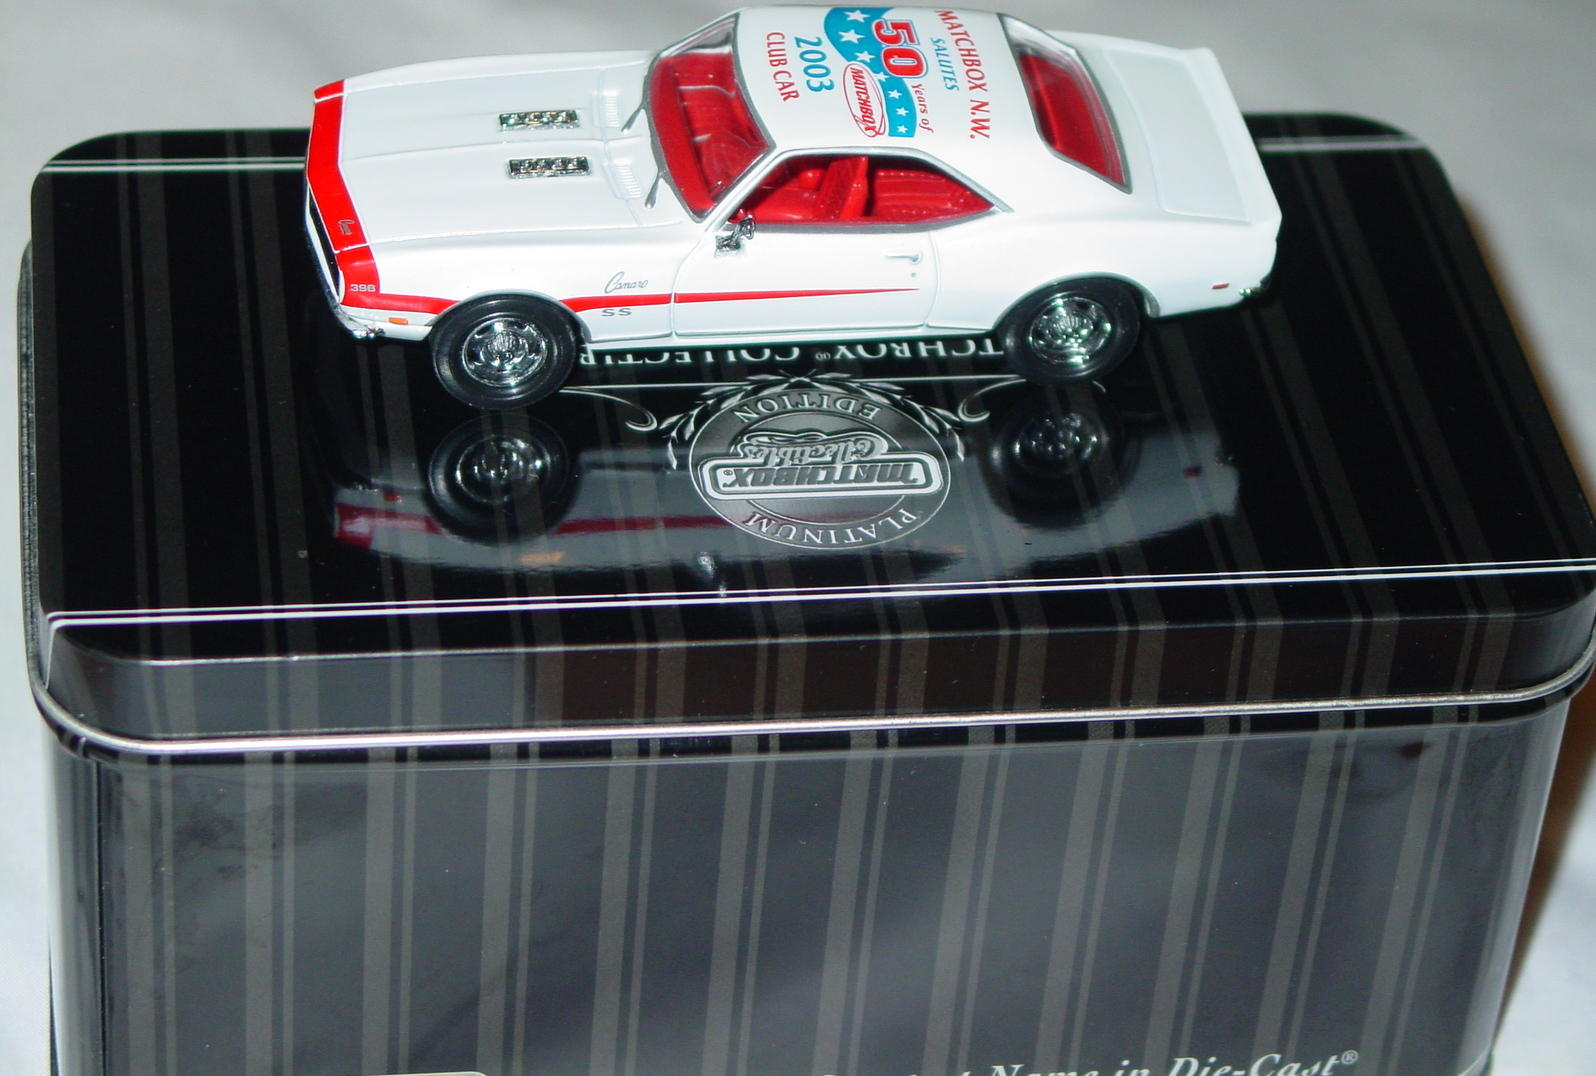 Collectibles - 92686 PLATINUM SELECT 68 Camaro White MBX NW 2003